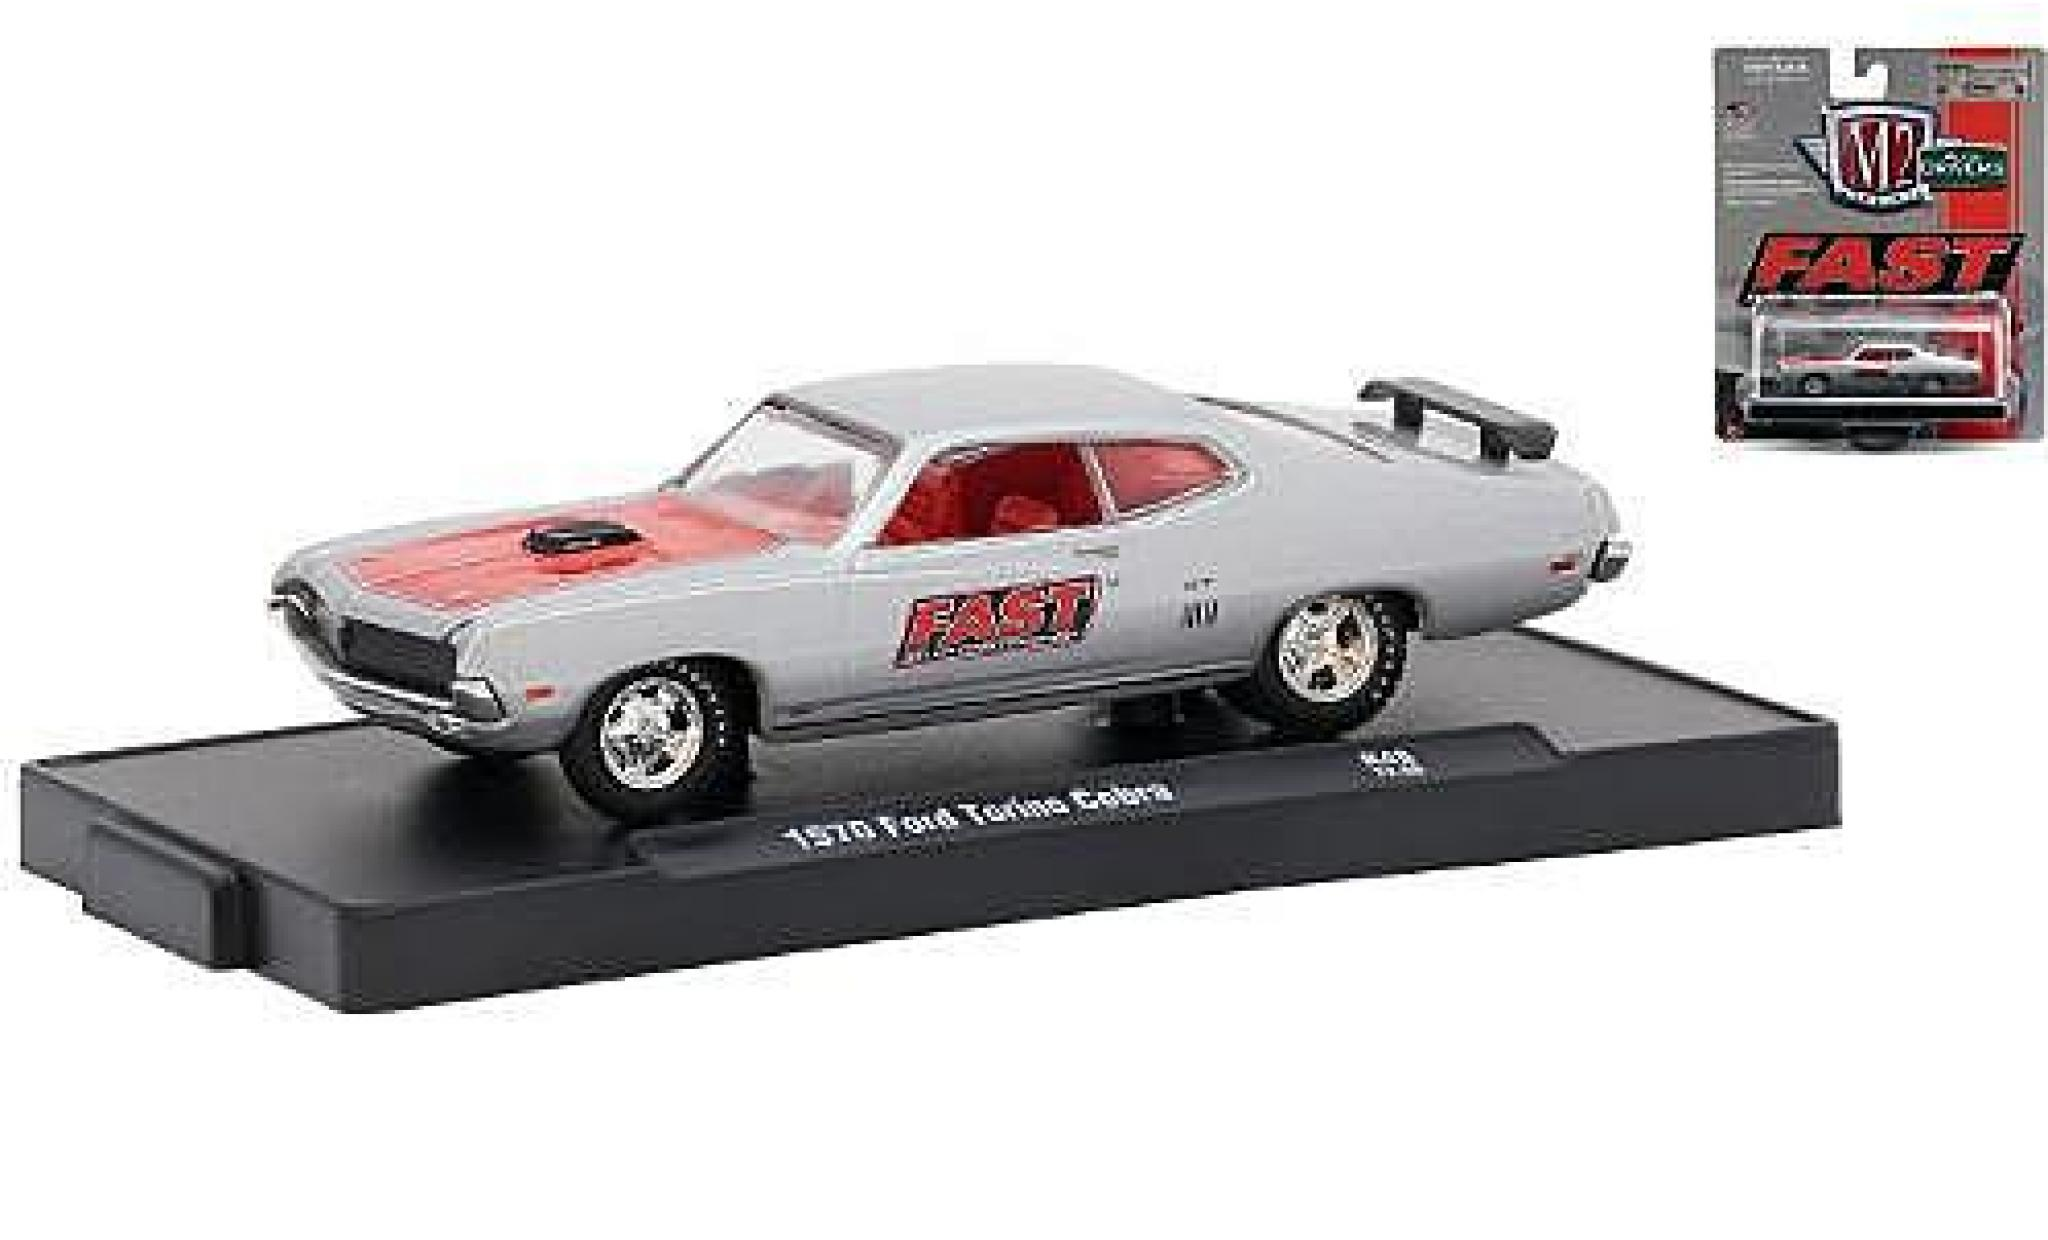 Ford Torino 1/64 M2 Machines Cobra grise/rouge FAST (Fuel Air Spark Technology) 1970